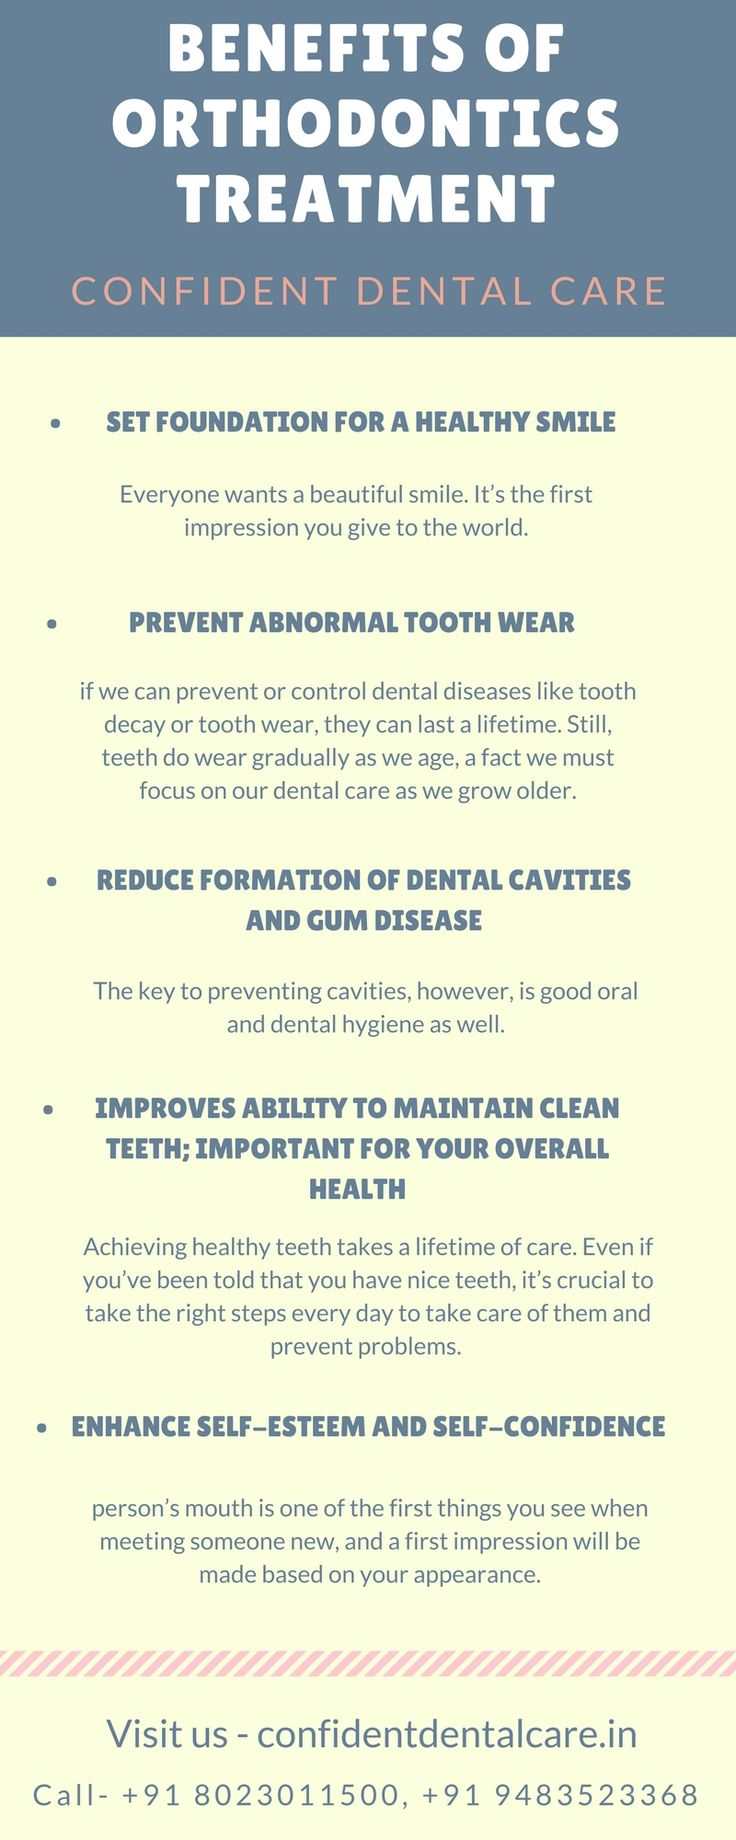 How do you get Benefit From Orthodontics?  Call at +91 80 23011500 +91 94835 23368 for consultation, Know more about Orthodontics treatment at https://goo.gl/rJTk42 #Orthodonticstreatment #Orthodonticsclinic #Dentalclinic #bangaloredentist #DentalCare #Dentist